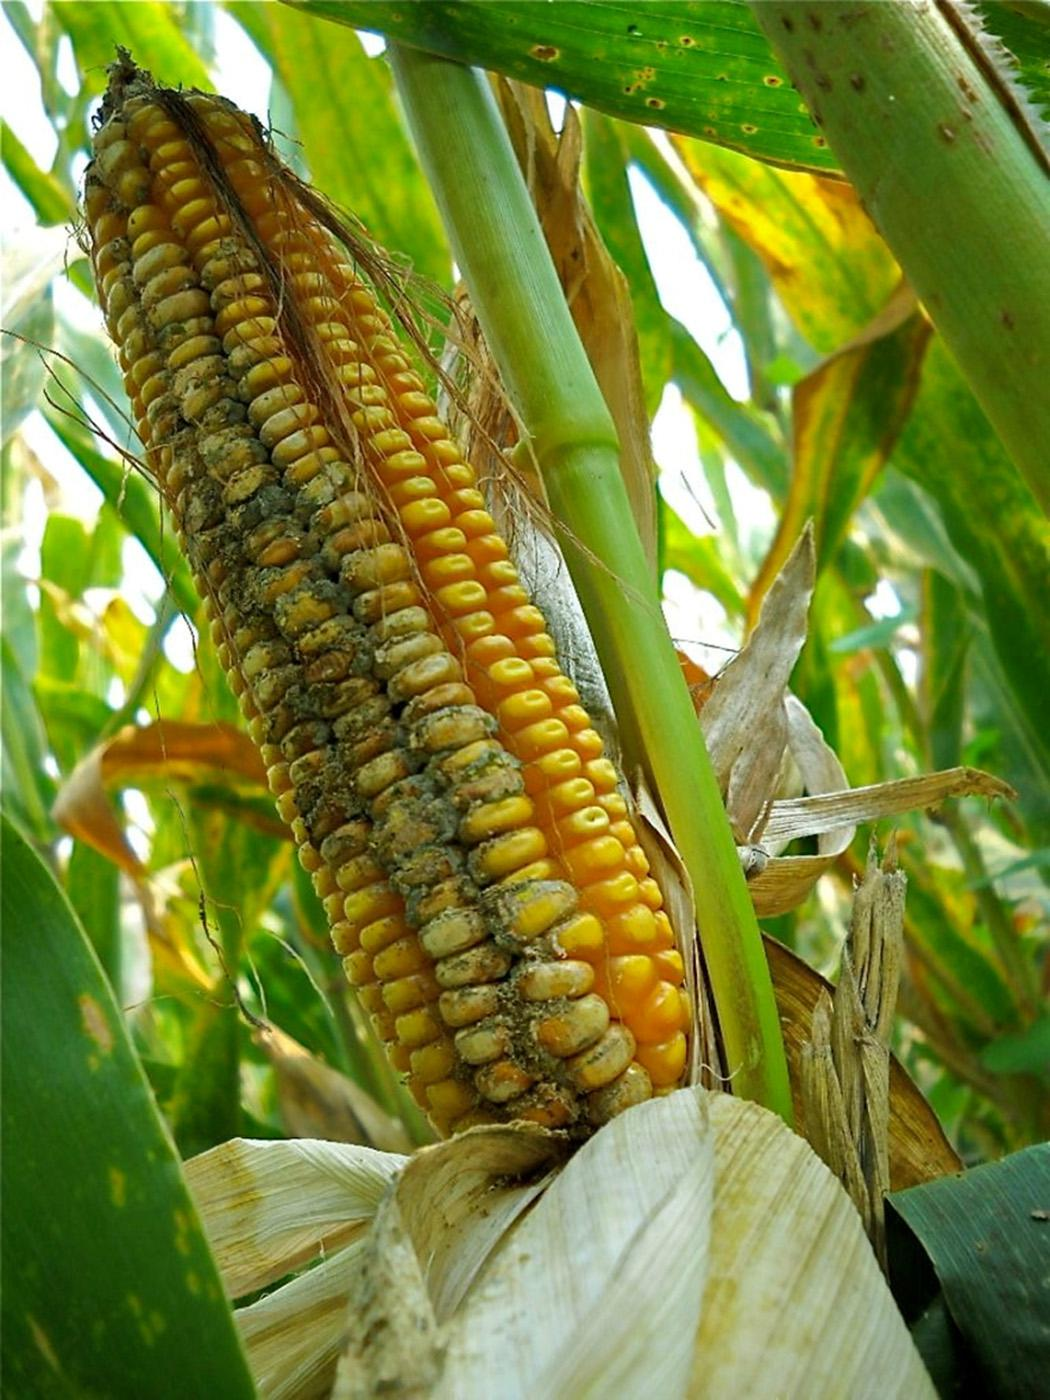 The fungus aflatoxin can destroy an entire corn crop. Mississippi State University plant pathologist Gabe Sciumbato and U.S. Department of Agriculture's Agricultural Research Service plant pathologists Hamed Abbas and Mark Weaver developed an in-field approach to reduce levels of this fungus in corn. (Photo by USDA-ARS/Mark Weaver)